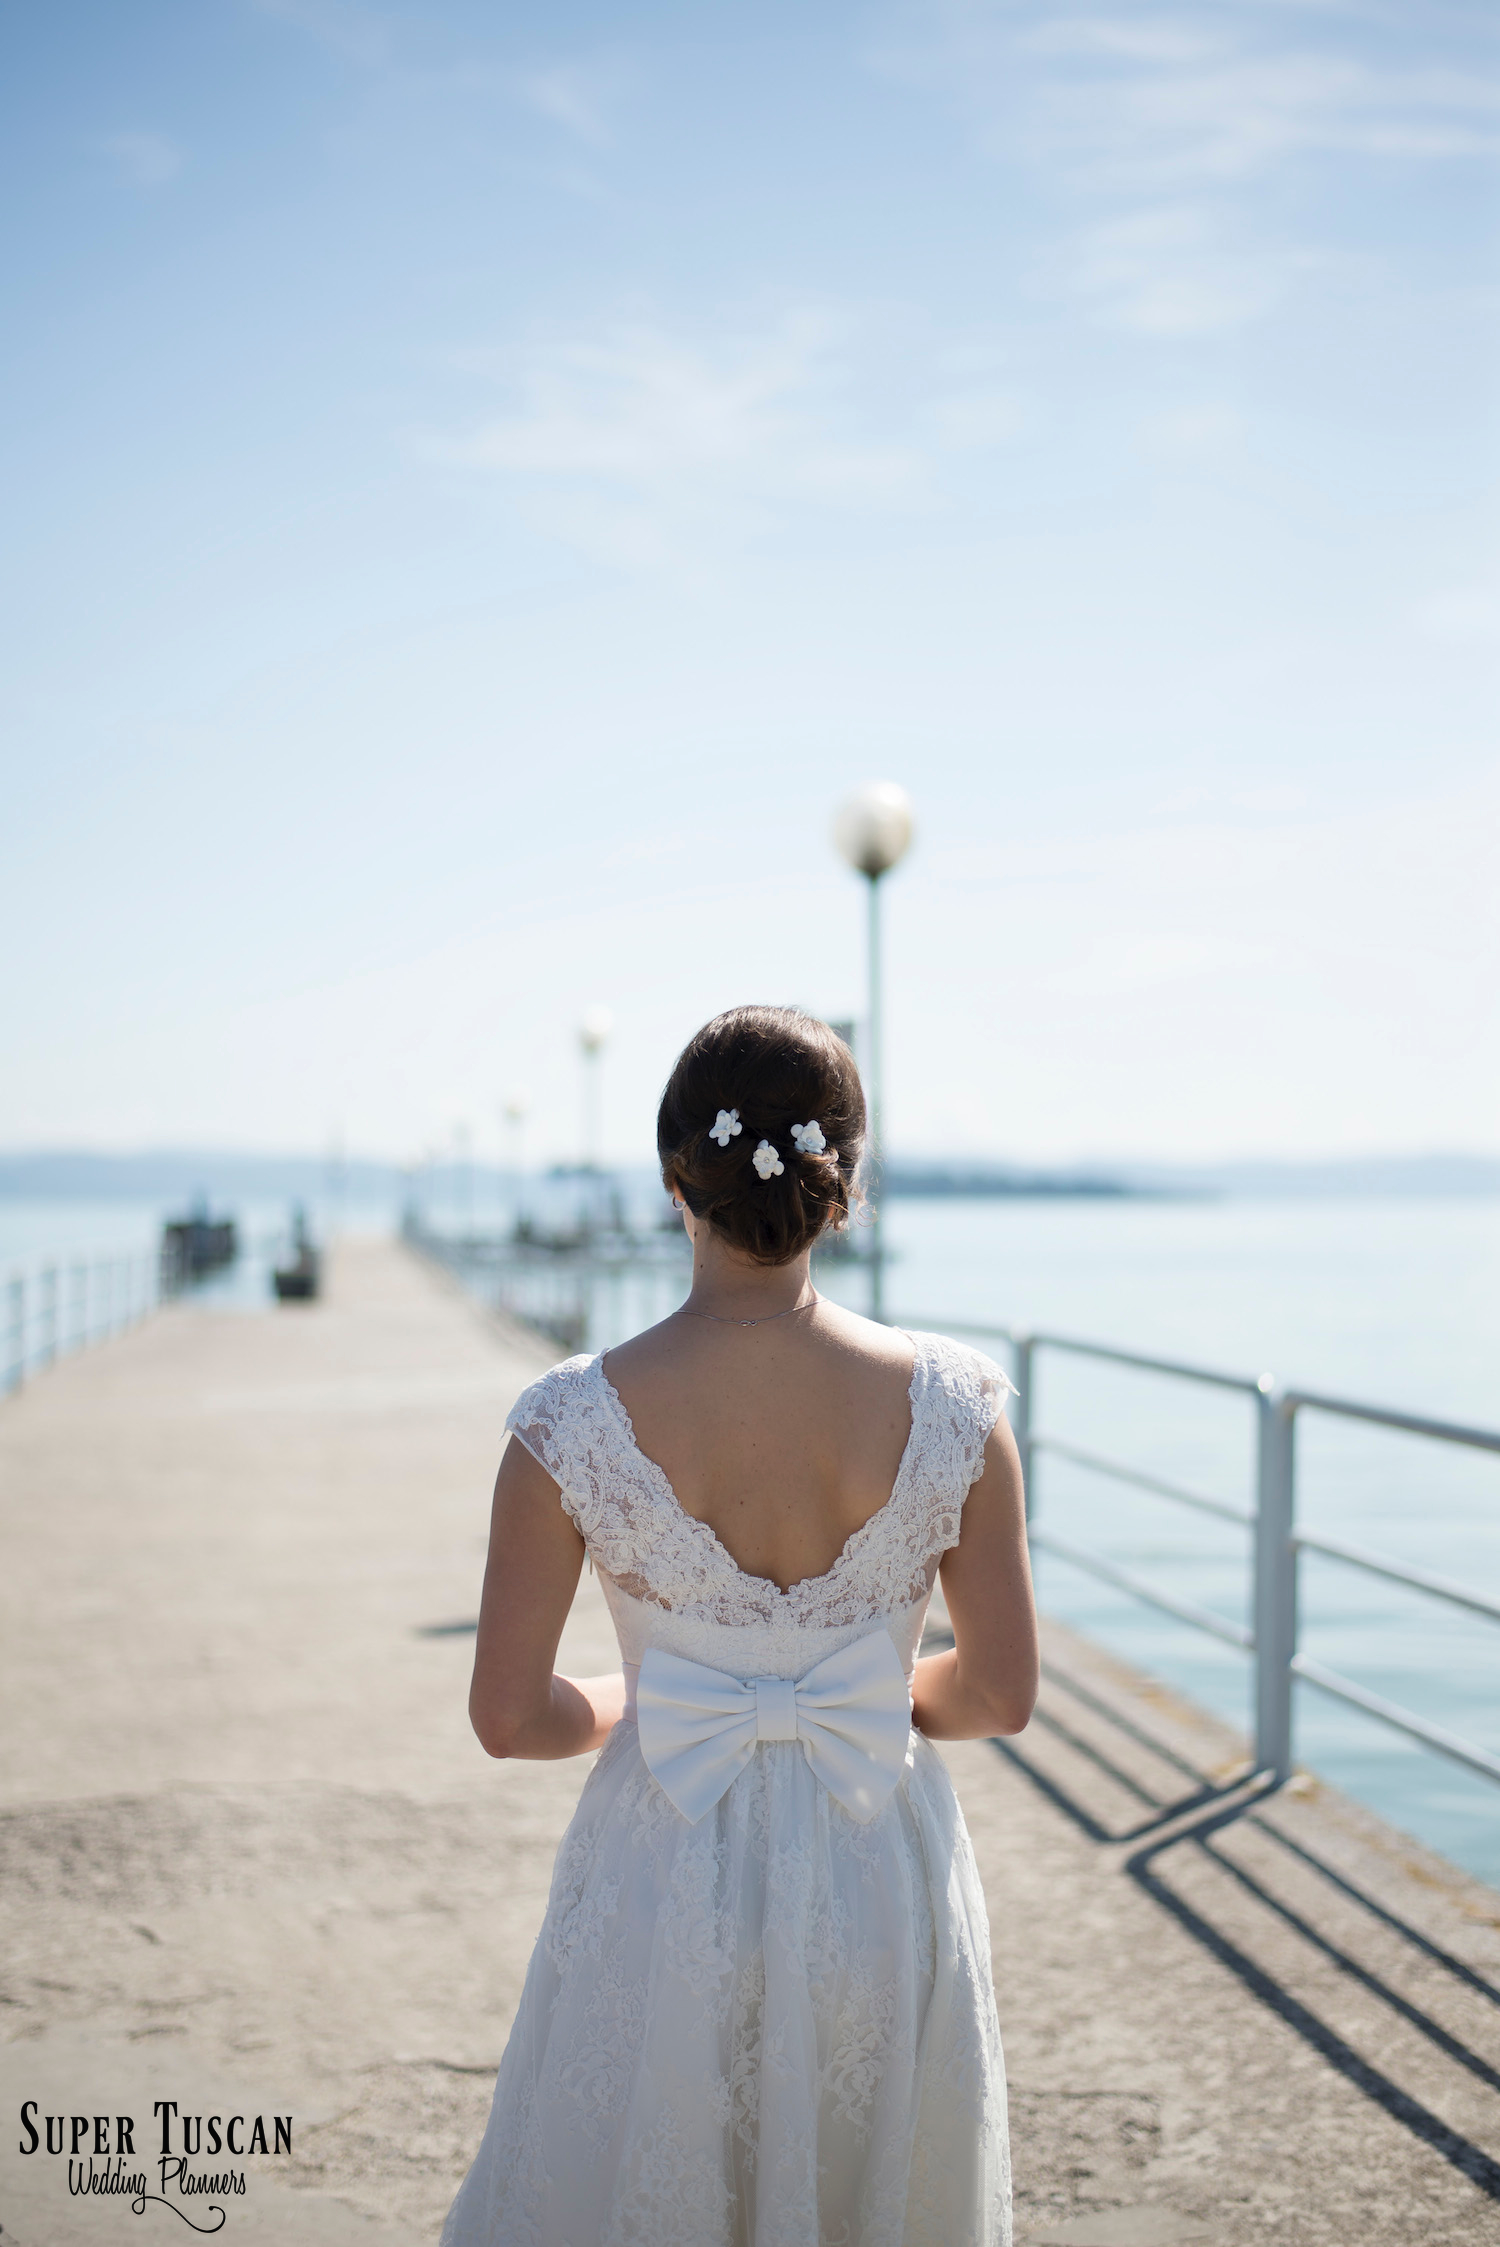 11Wedding on Trasimeno Lake - Umbria